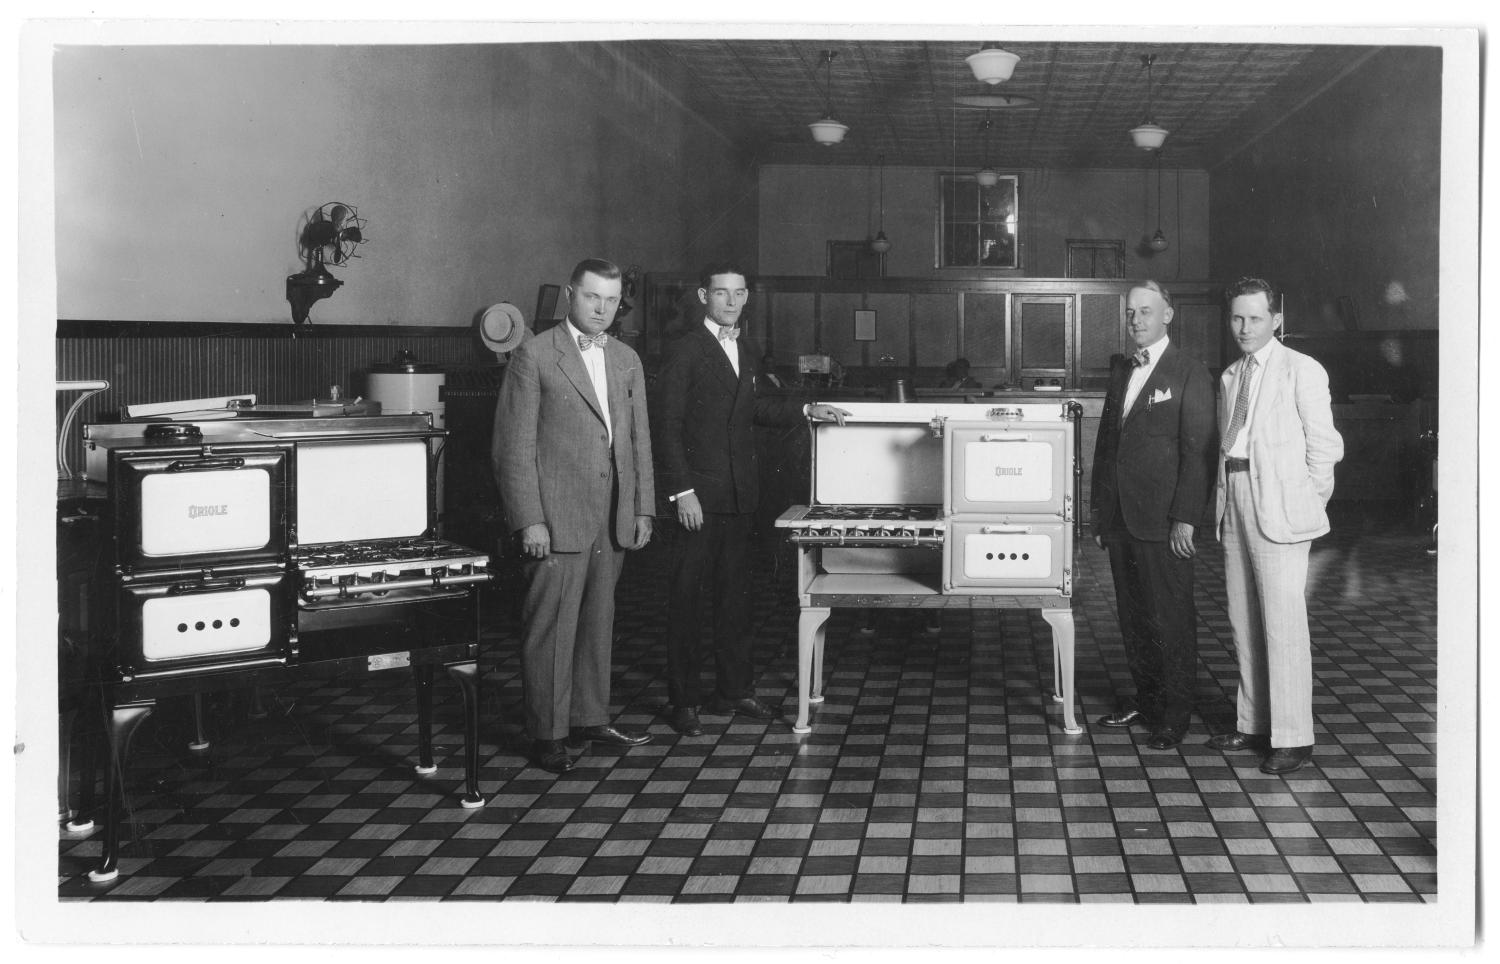 [Men Standing With Gas Ranges], Photograph of four men standing with gas ranges inside a store, from Peoples Gas Co. The men are wearing suits and ties, and are looking towards the camera. There is one black gas range on the left, and one white one in the middle of the photograph. There is a stamp on the back from Papsons Studio.,